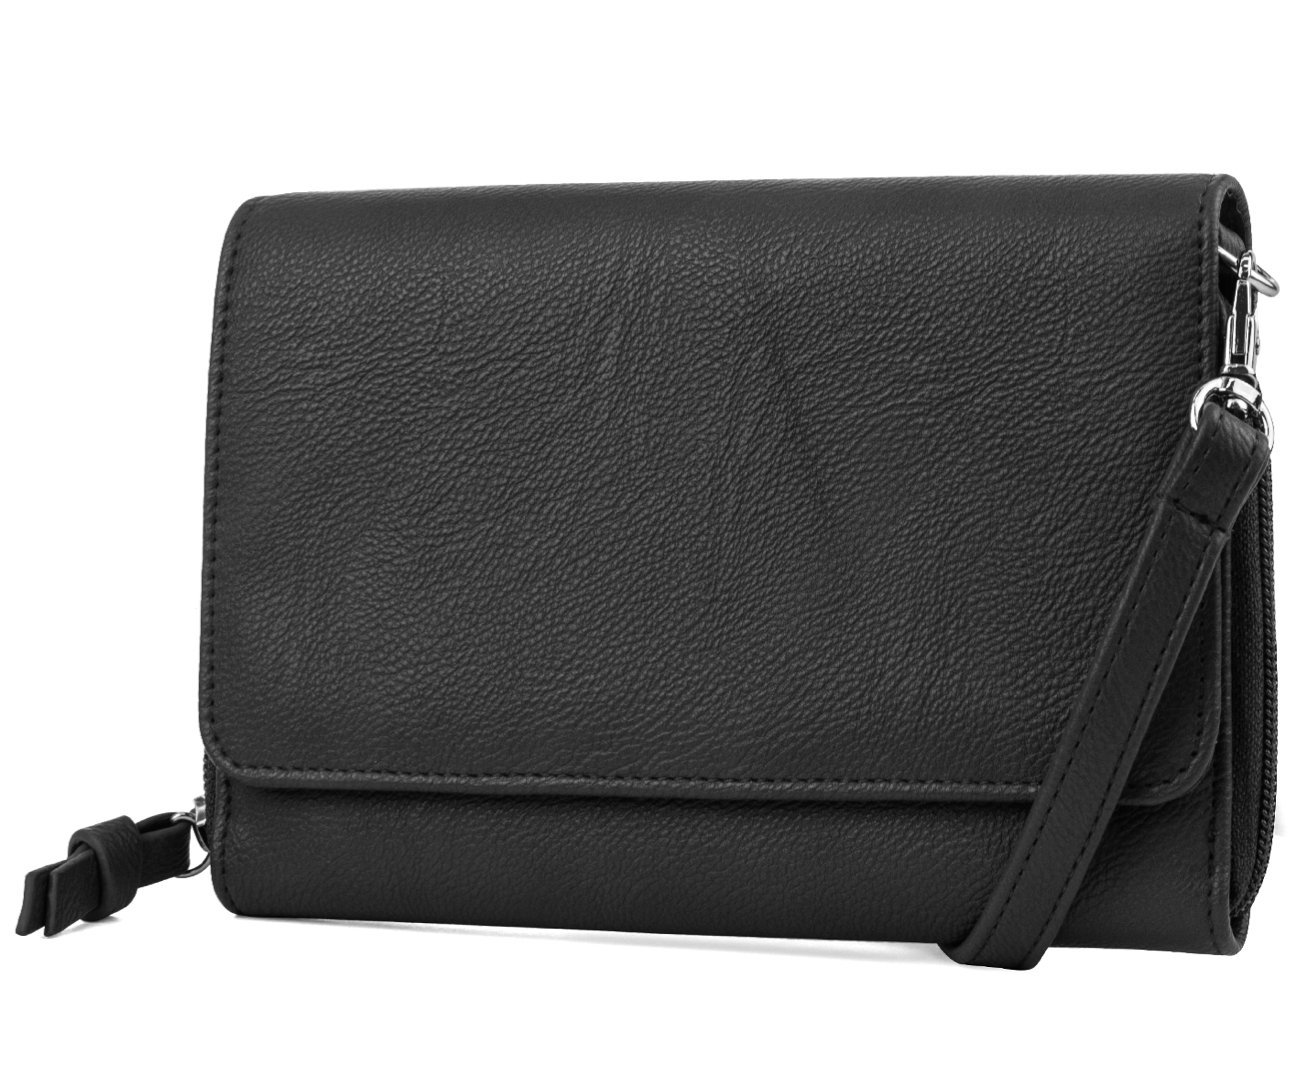 Mundi RFID Crossbody Bag For Women Anti Theft Travel Purse Handbag Wallet Vegan Leather (Black)